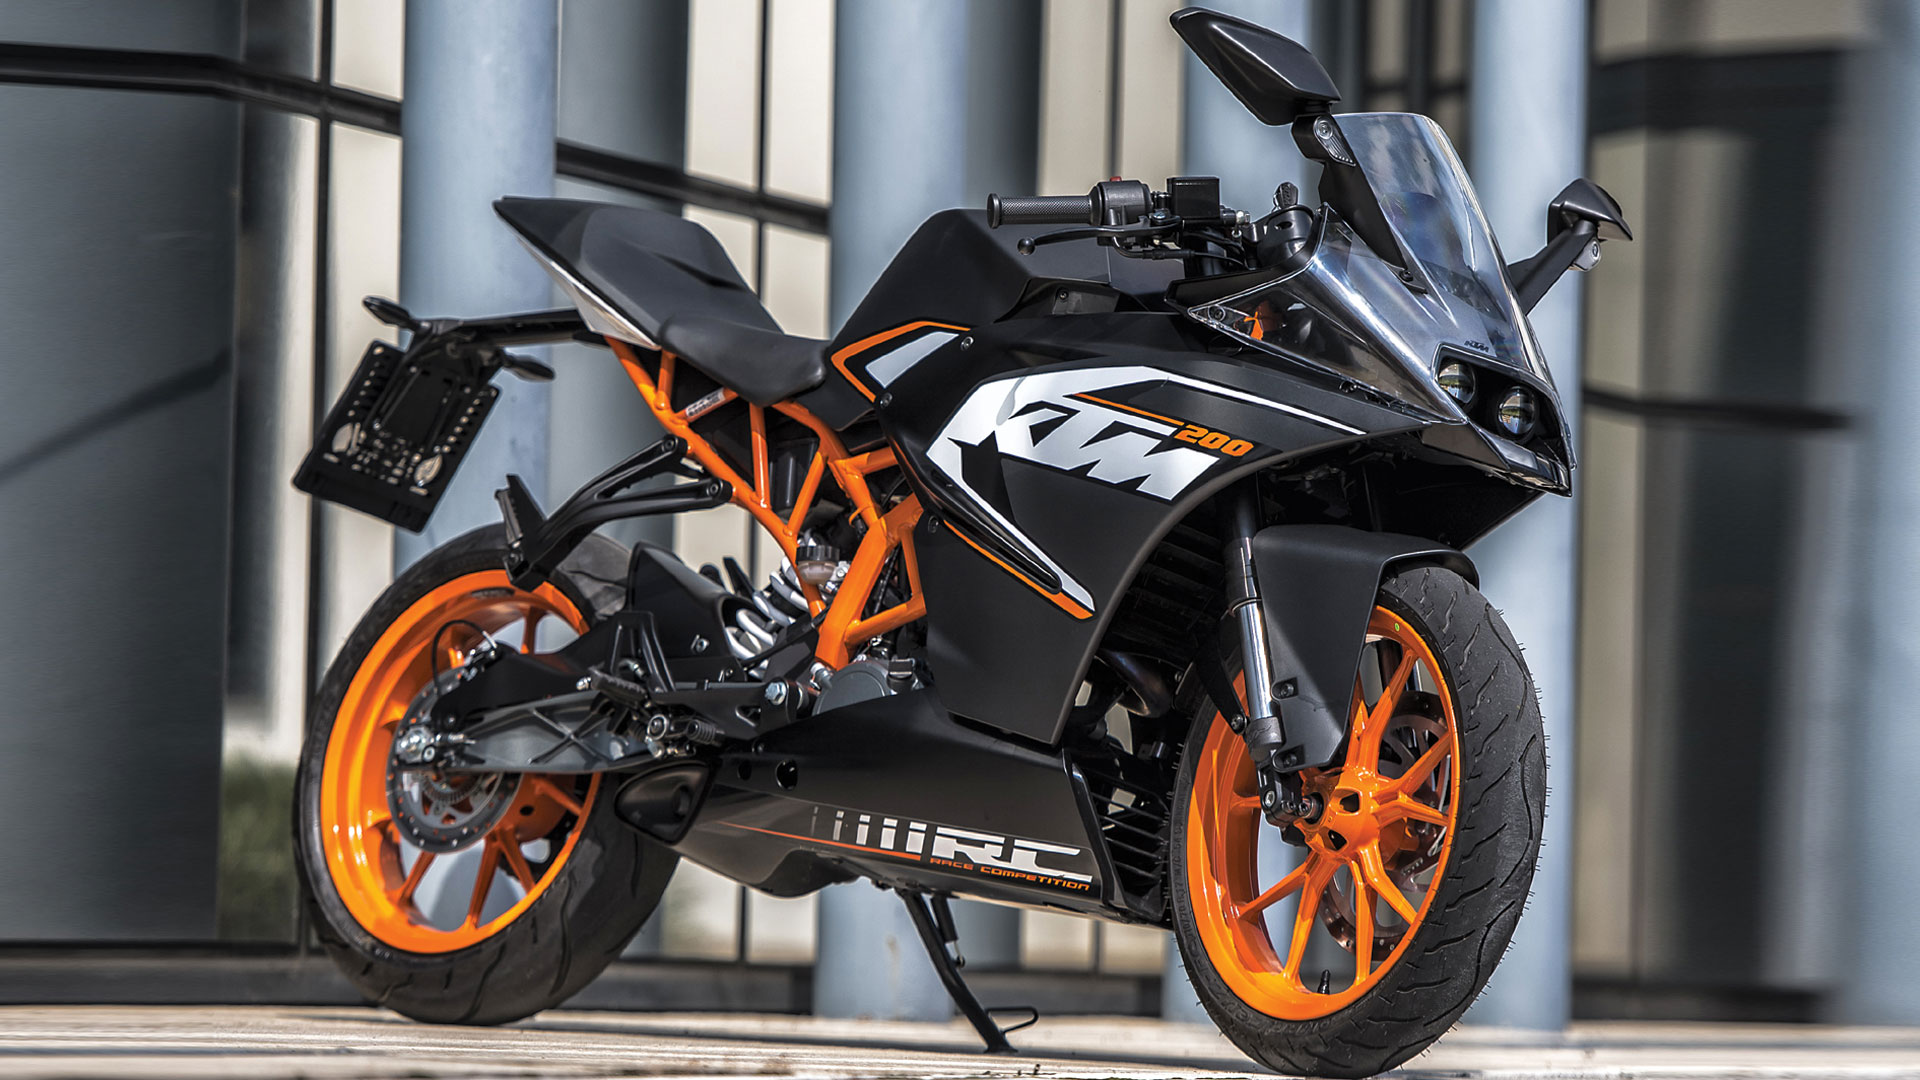 Ktm Rc 200 2014 Std Price Mileage Reviews